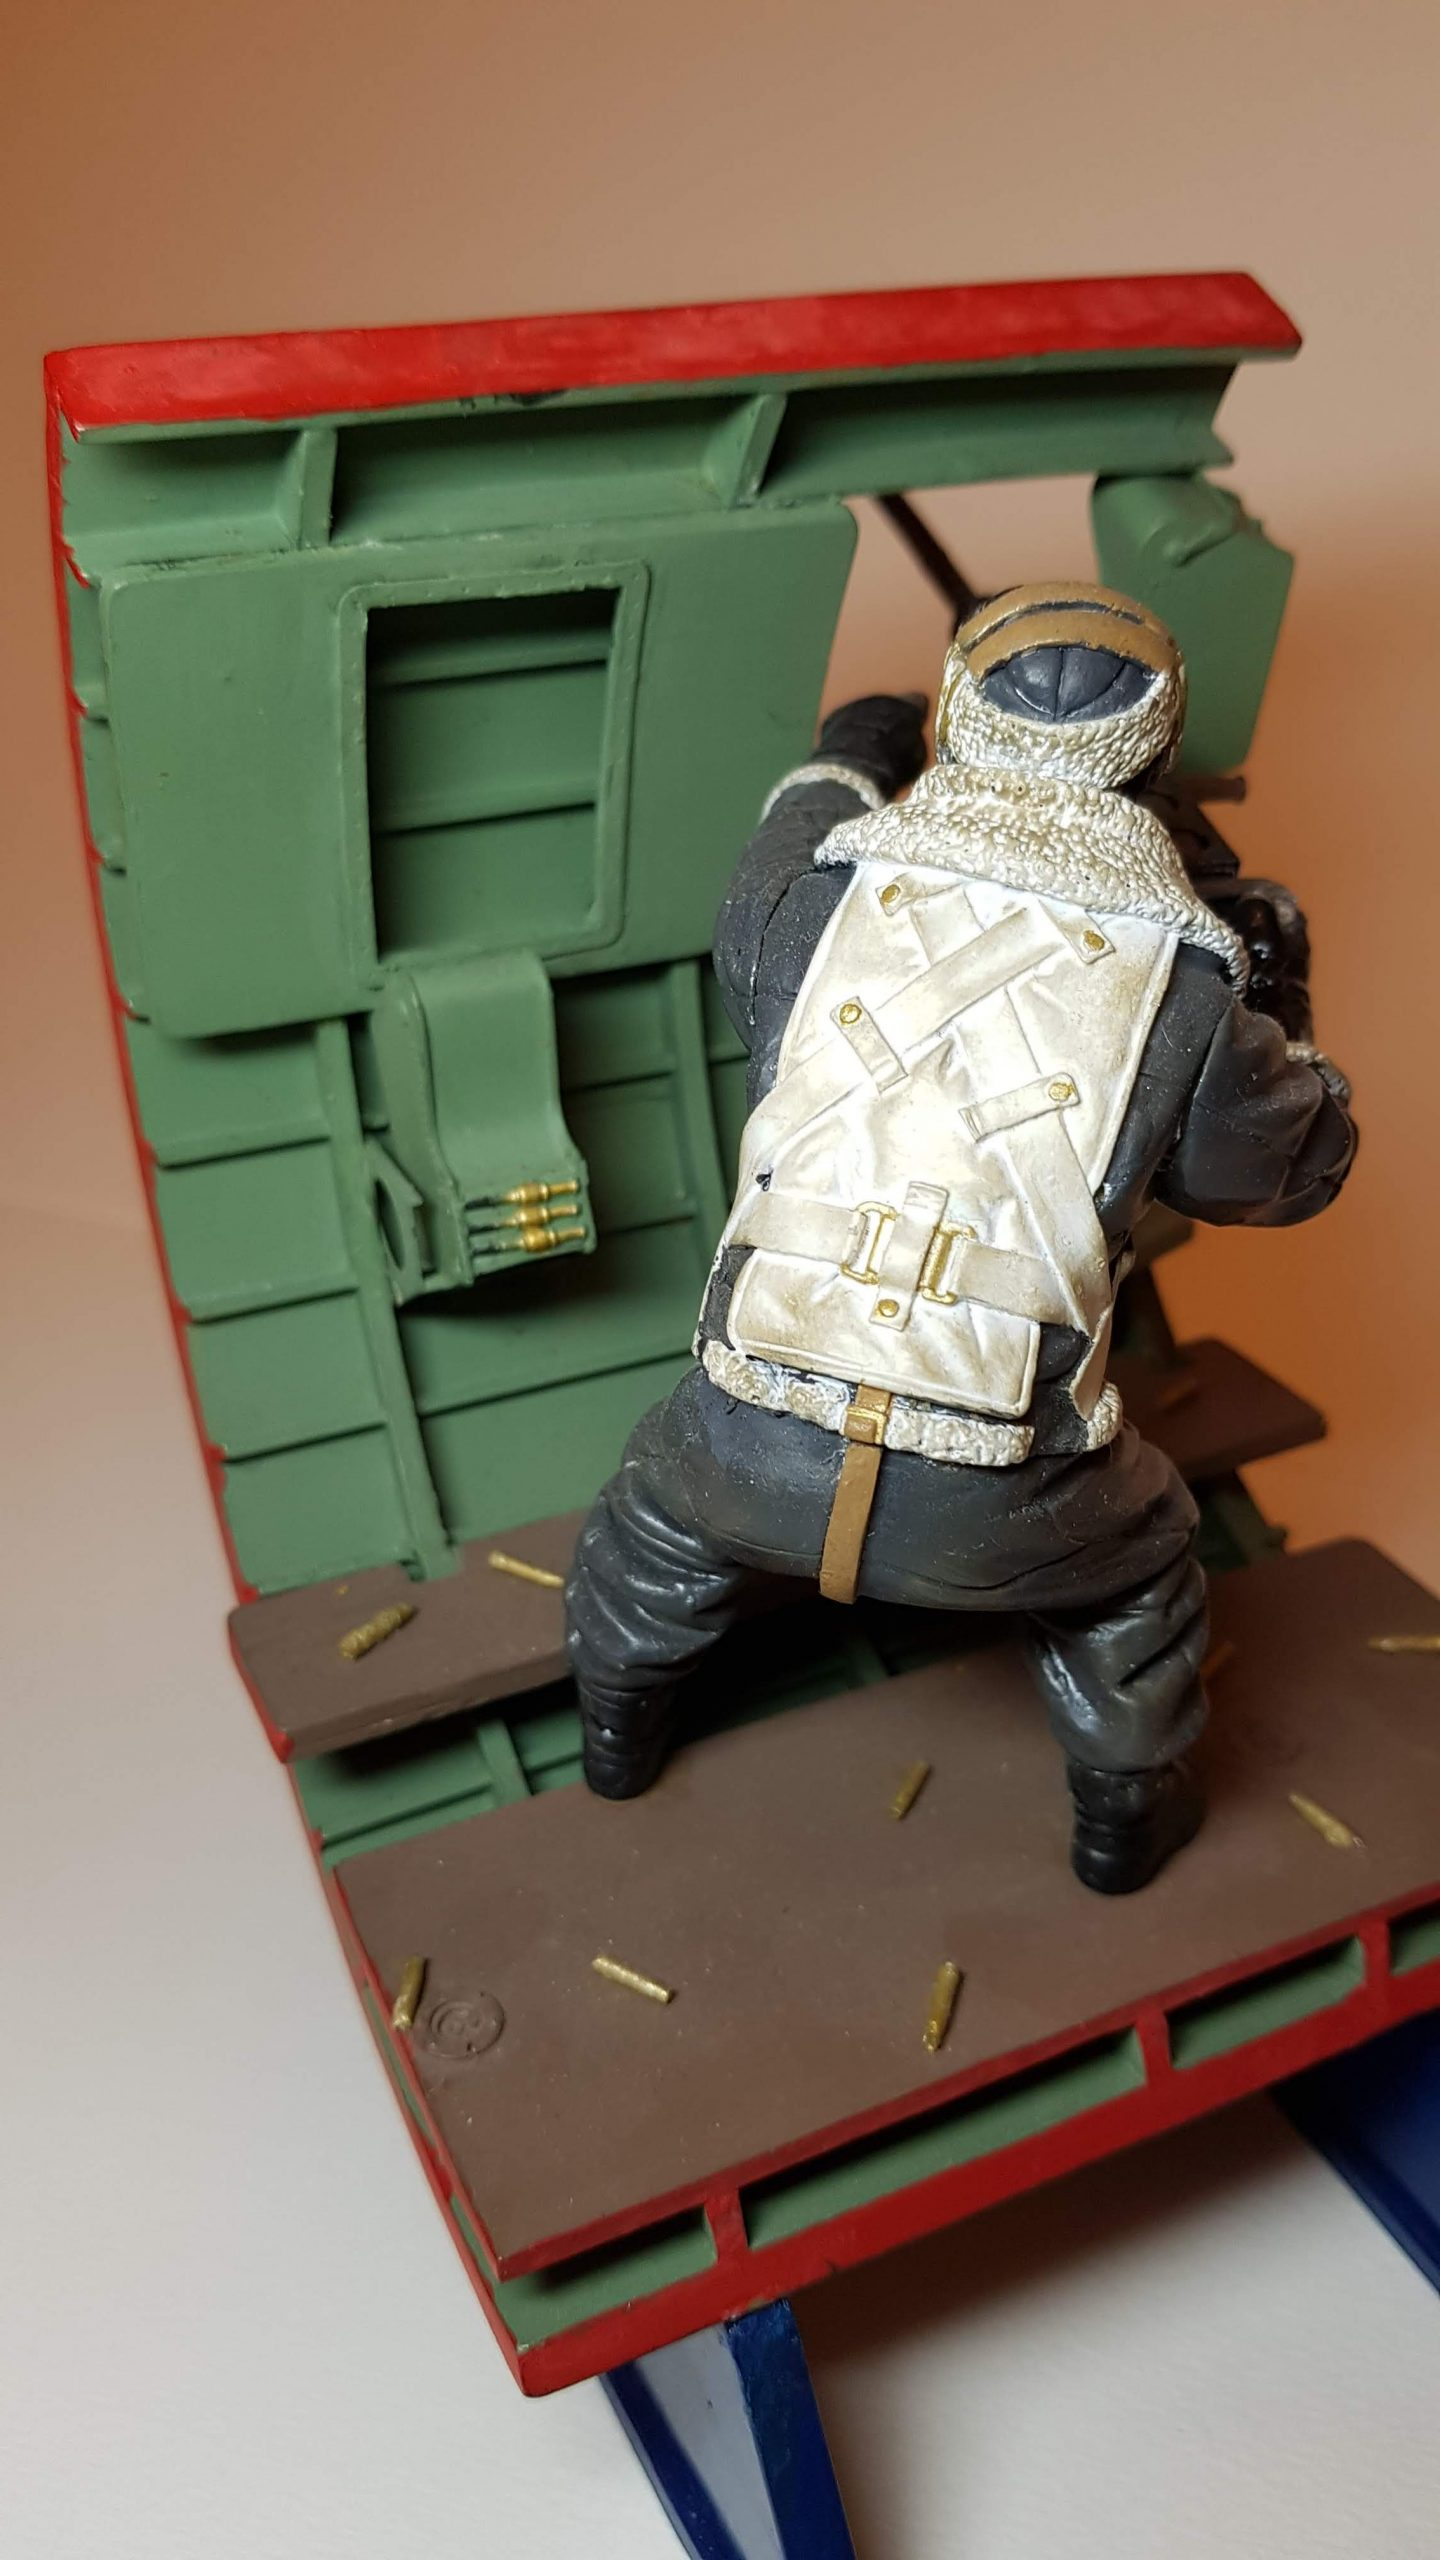 Model of Bandits! 2 O'Clock B17 Waist Gunner (WW2) - View 7 - 120mm Scale - Built By Wright Built - Verlinden Productions